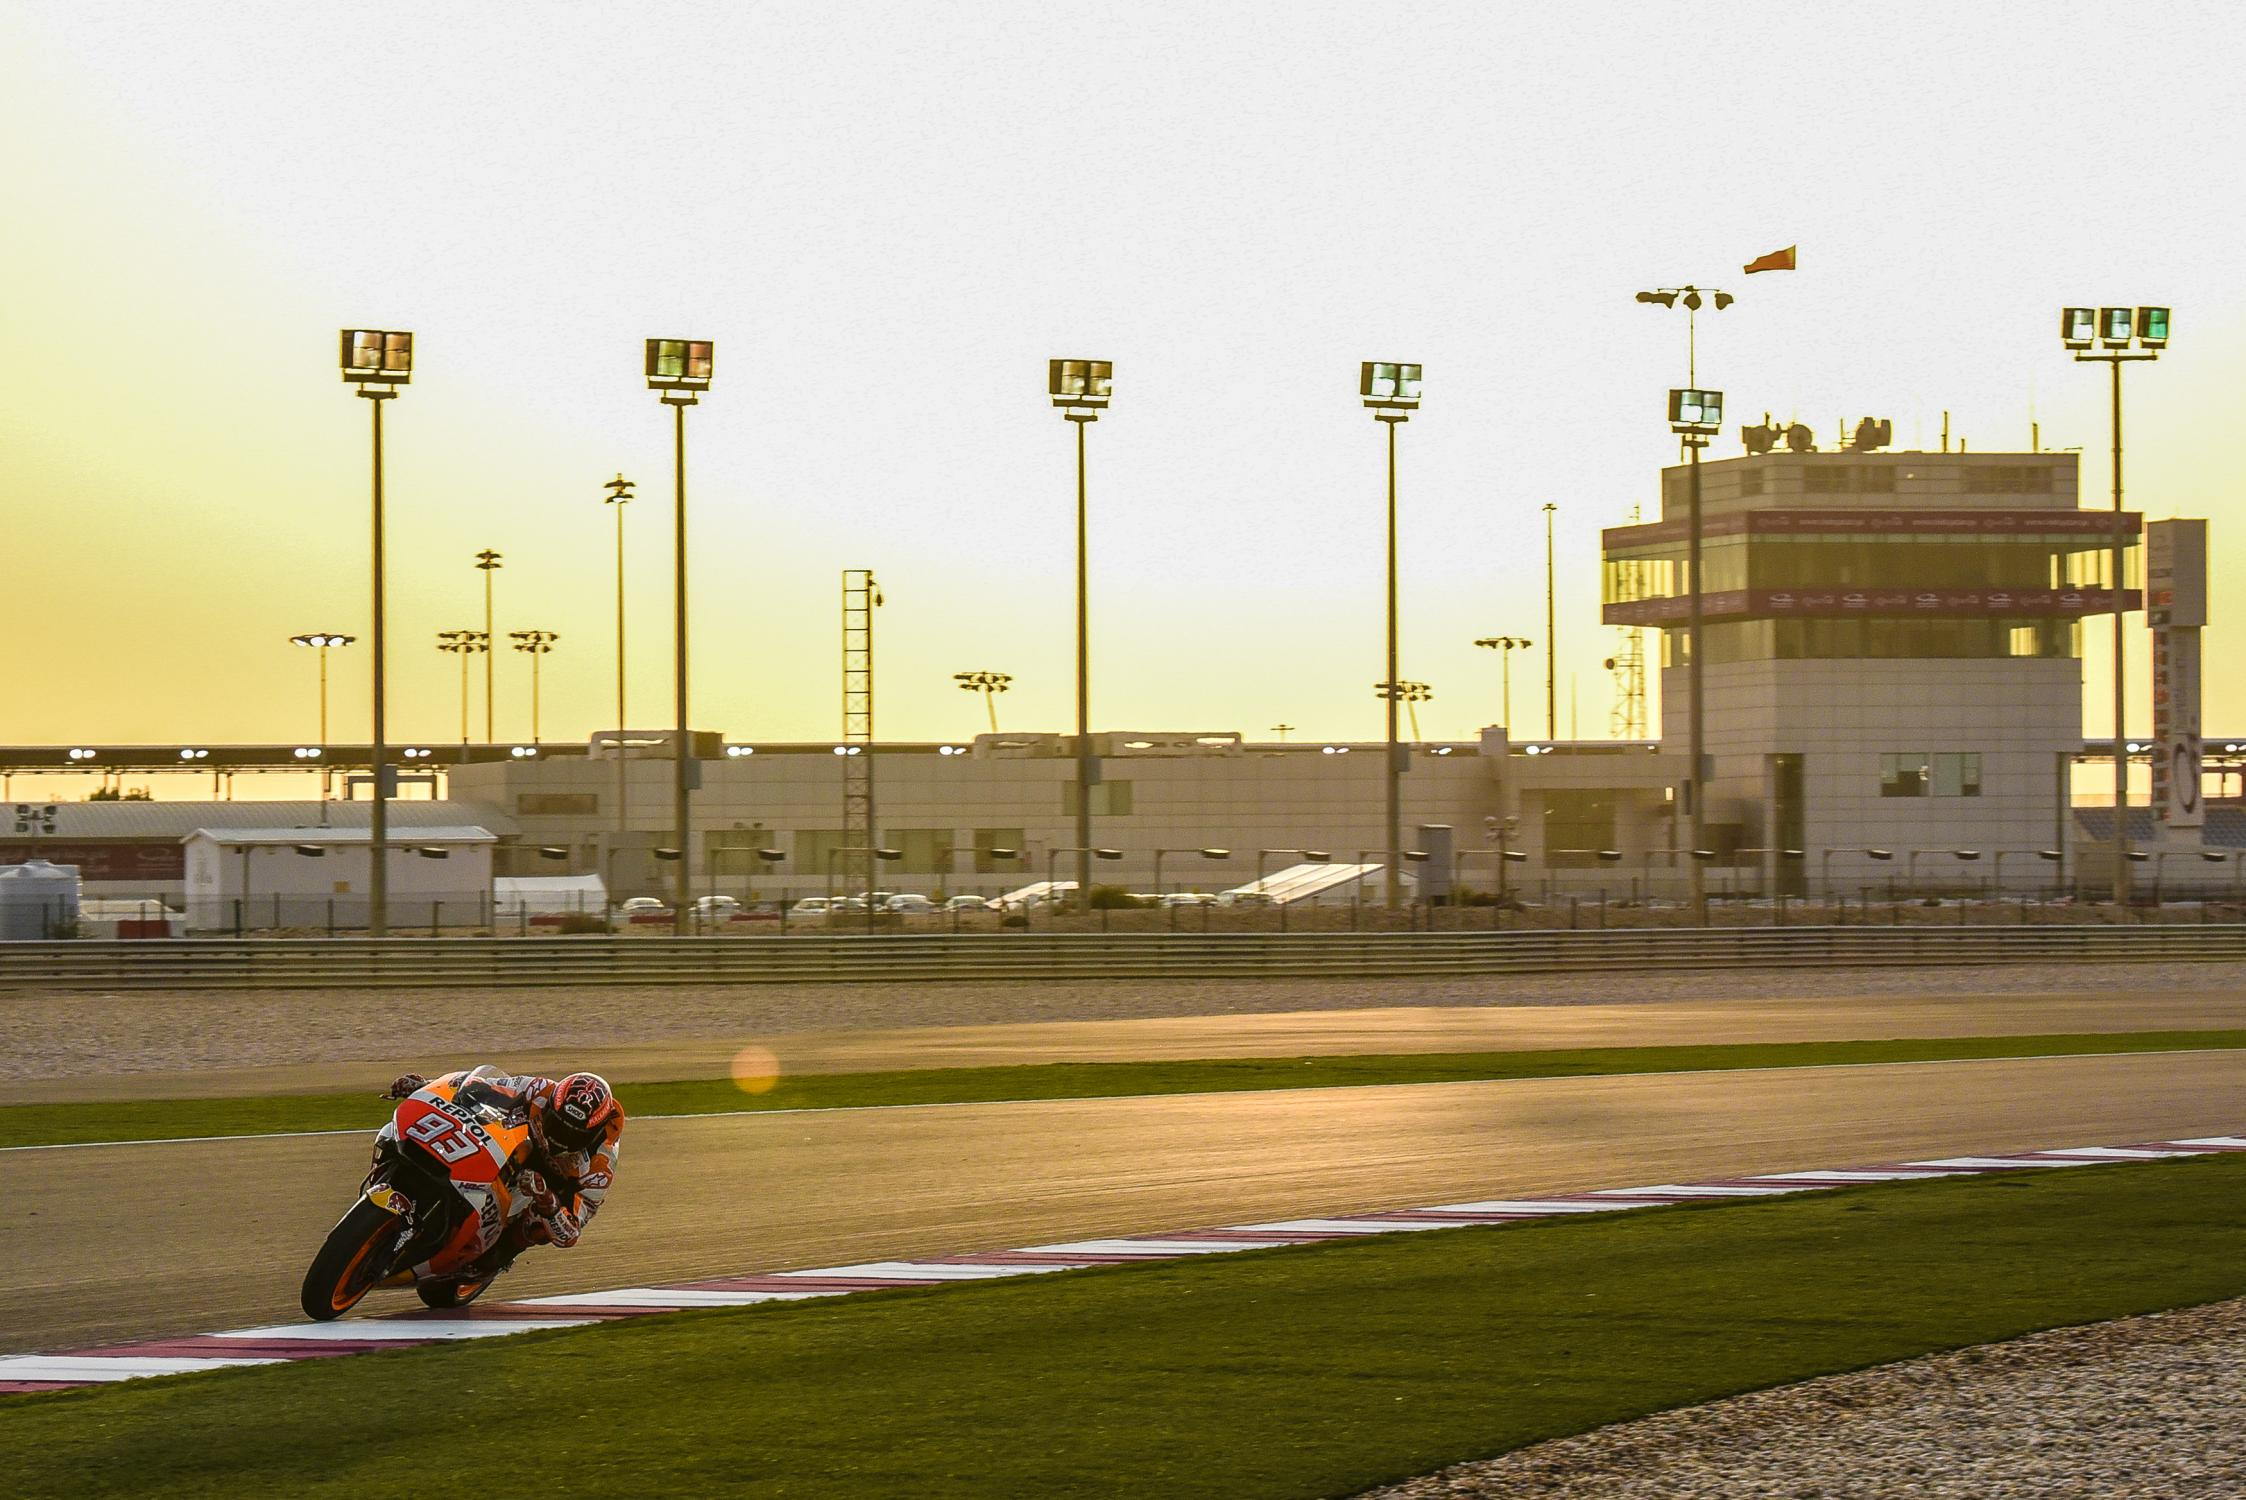 [Test] Losail 2018 93-marc-marquez-espdsc_1956_0.gallery_full_top_fullscreen